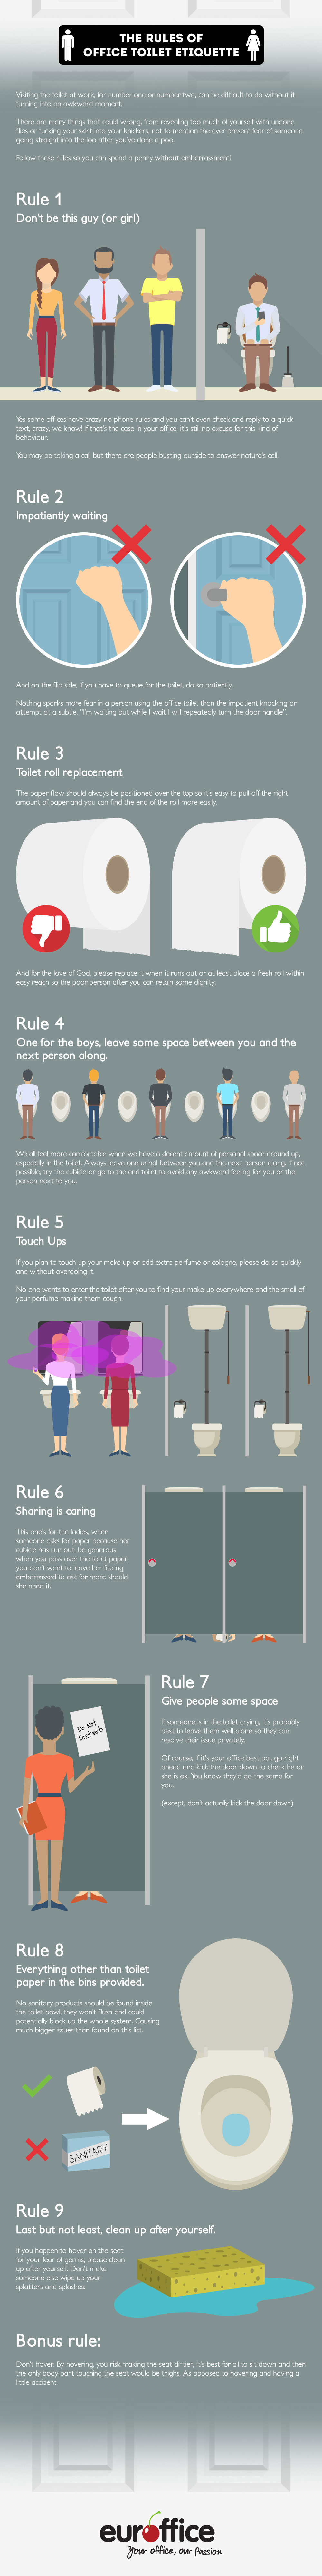 office-toilet-rules